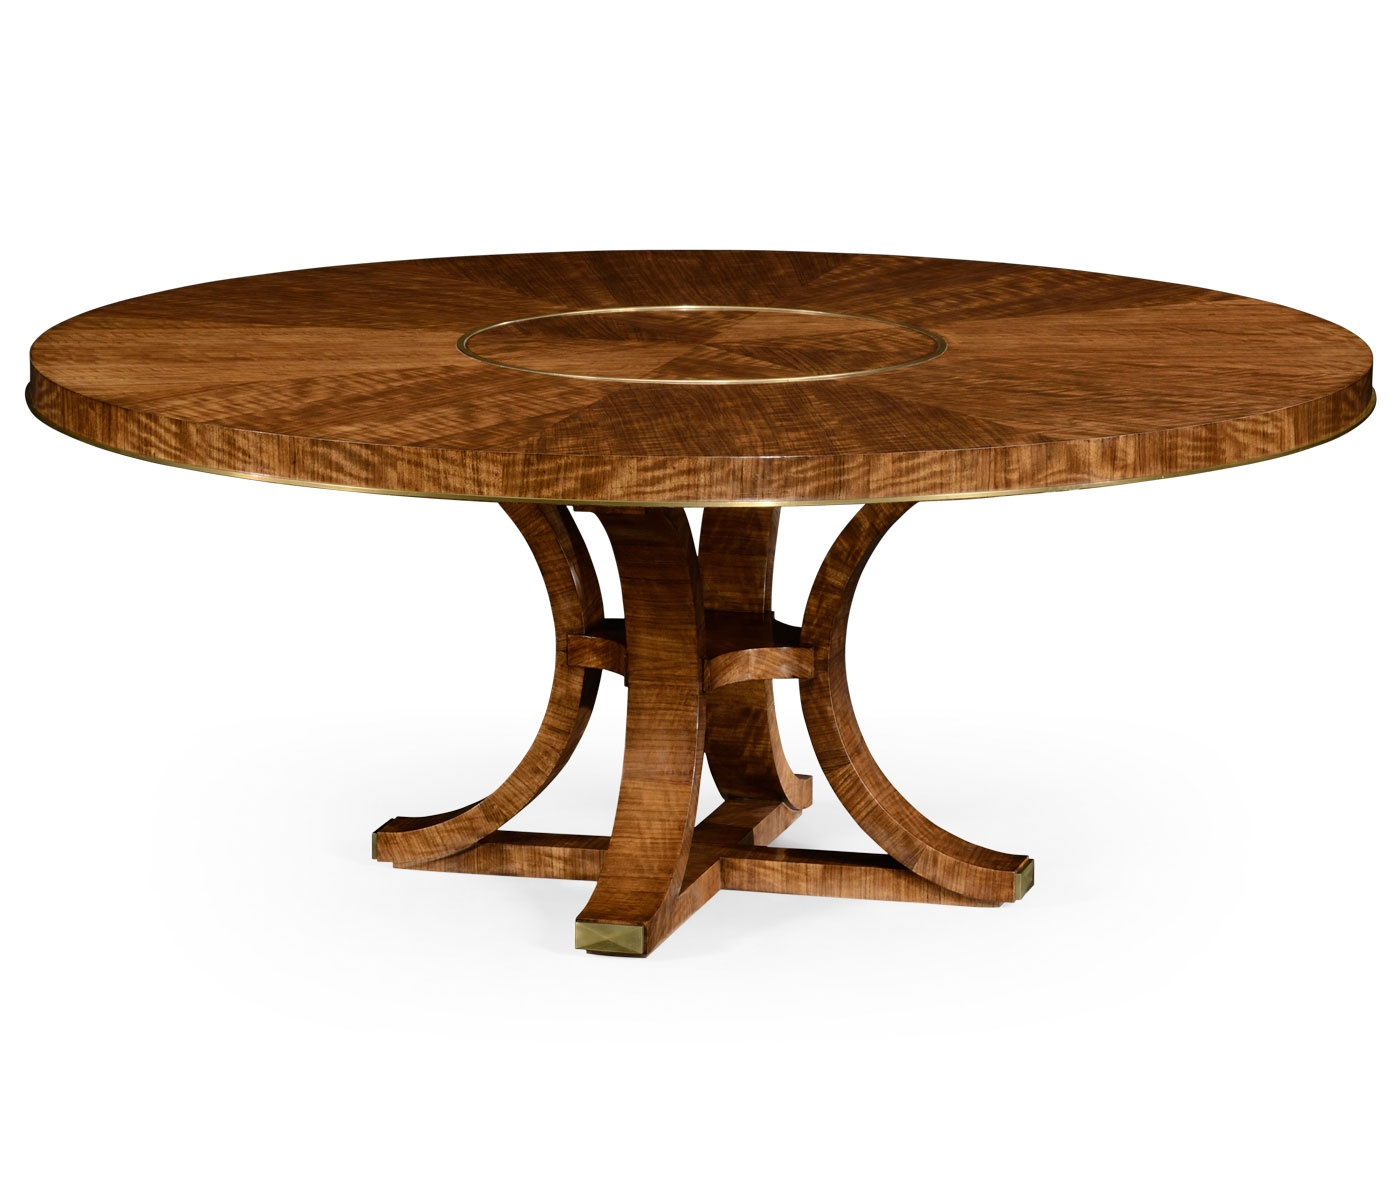 8 seater round dining table and chairs ergonomic chair recliner 72 lazy susan swanky interiors